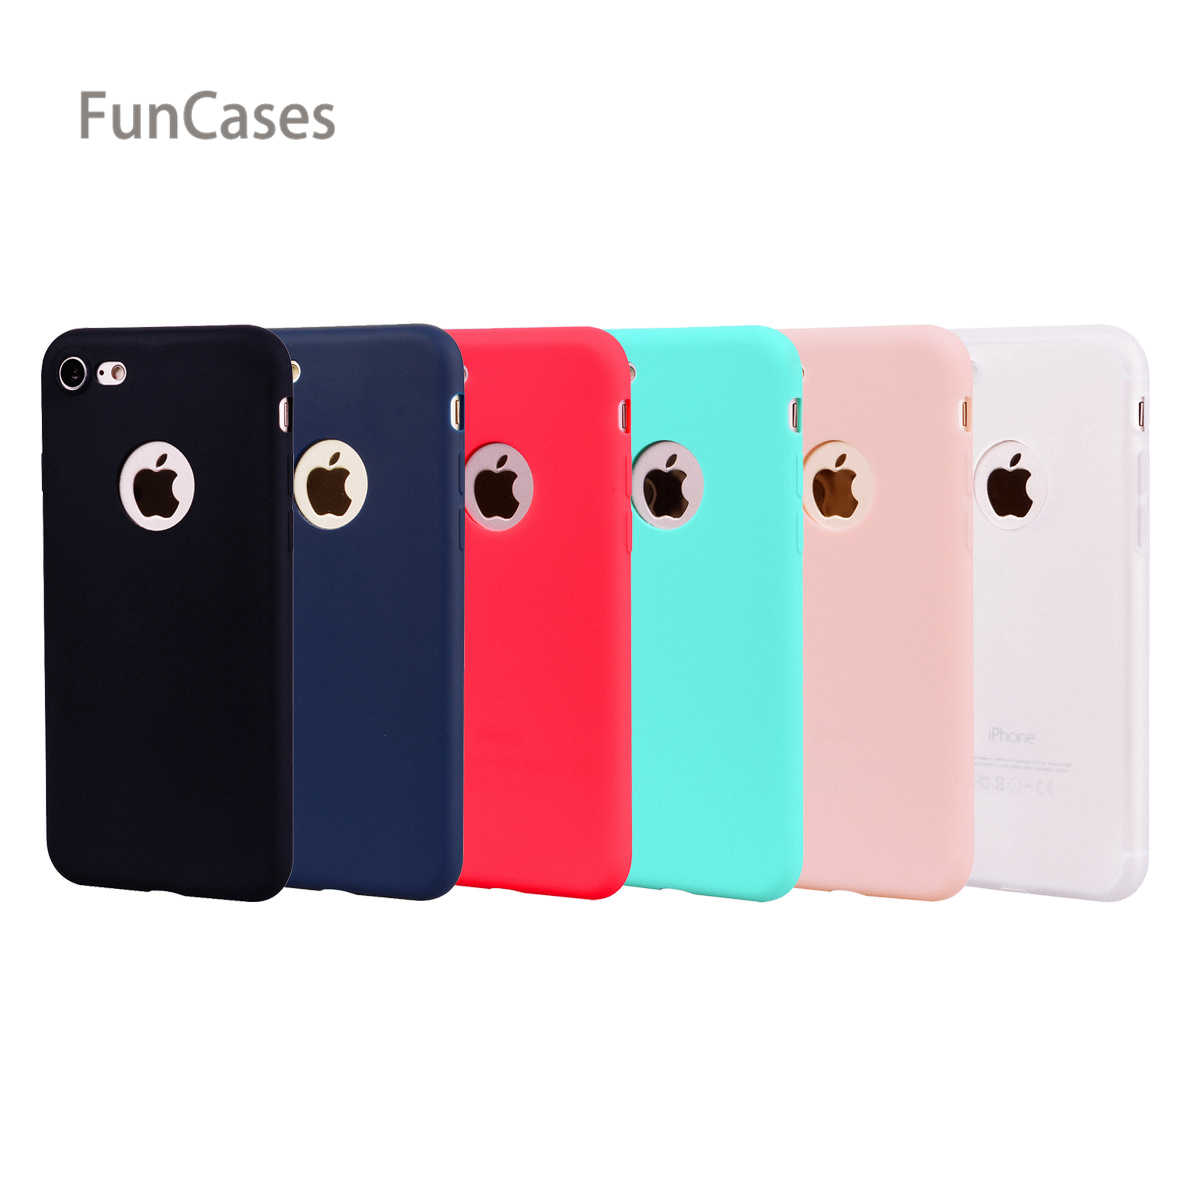 Trường Hợp đơn giản sFor Hoesjes iPhone 7 Mềm Silicone Cover Quay Lại Di Động Patterned Telefon Aksesuar Trường Hợp sFor iPhone 8 Skal Quente